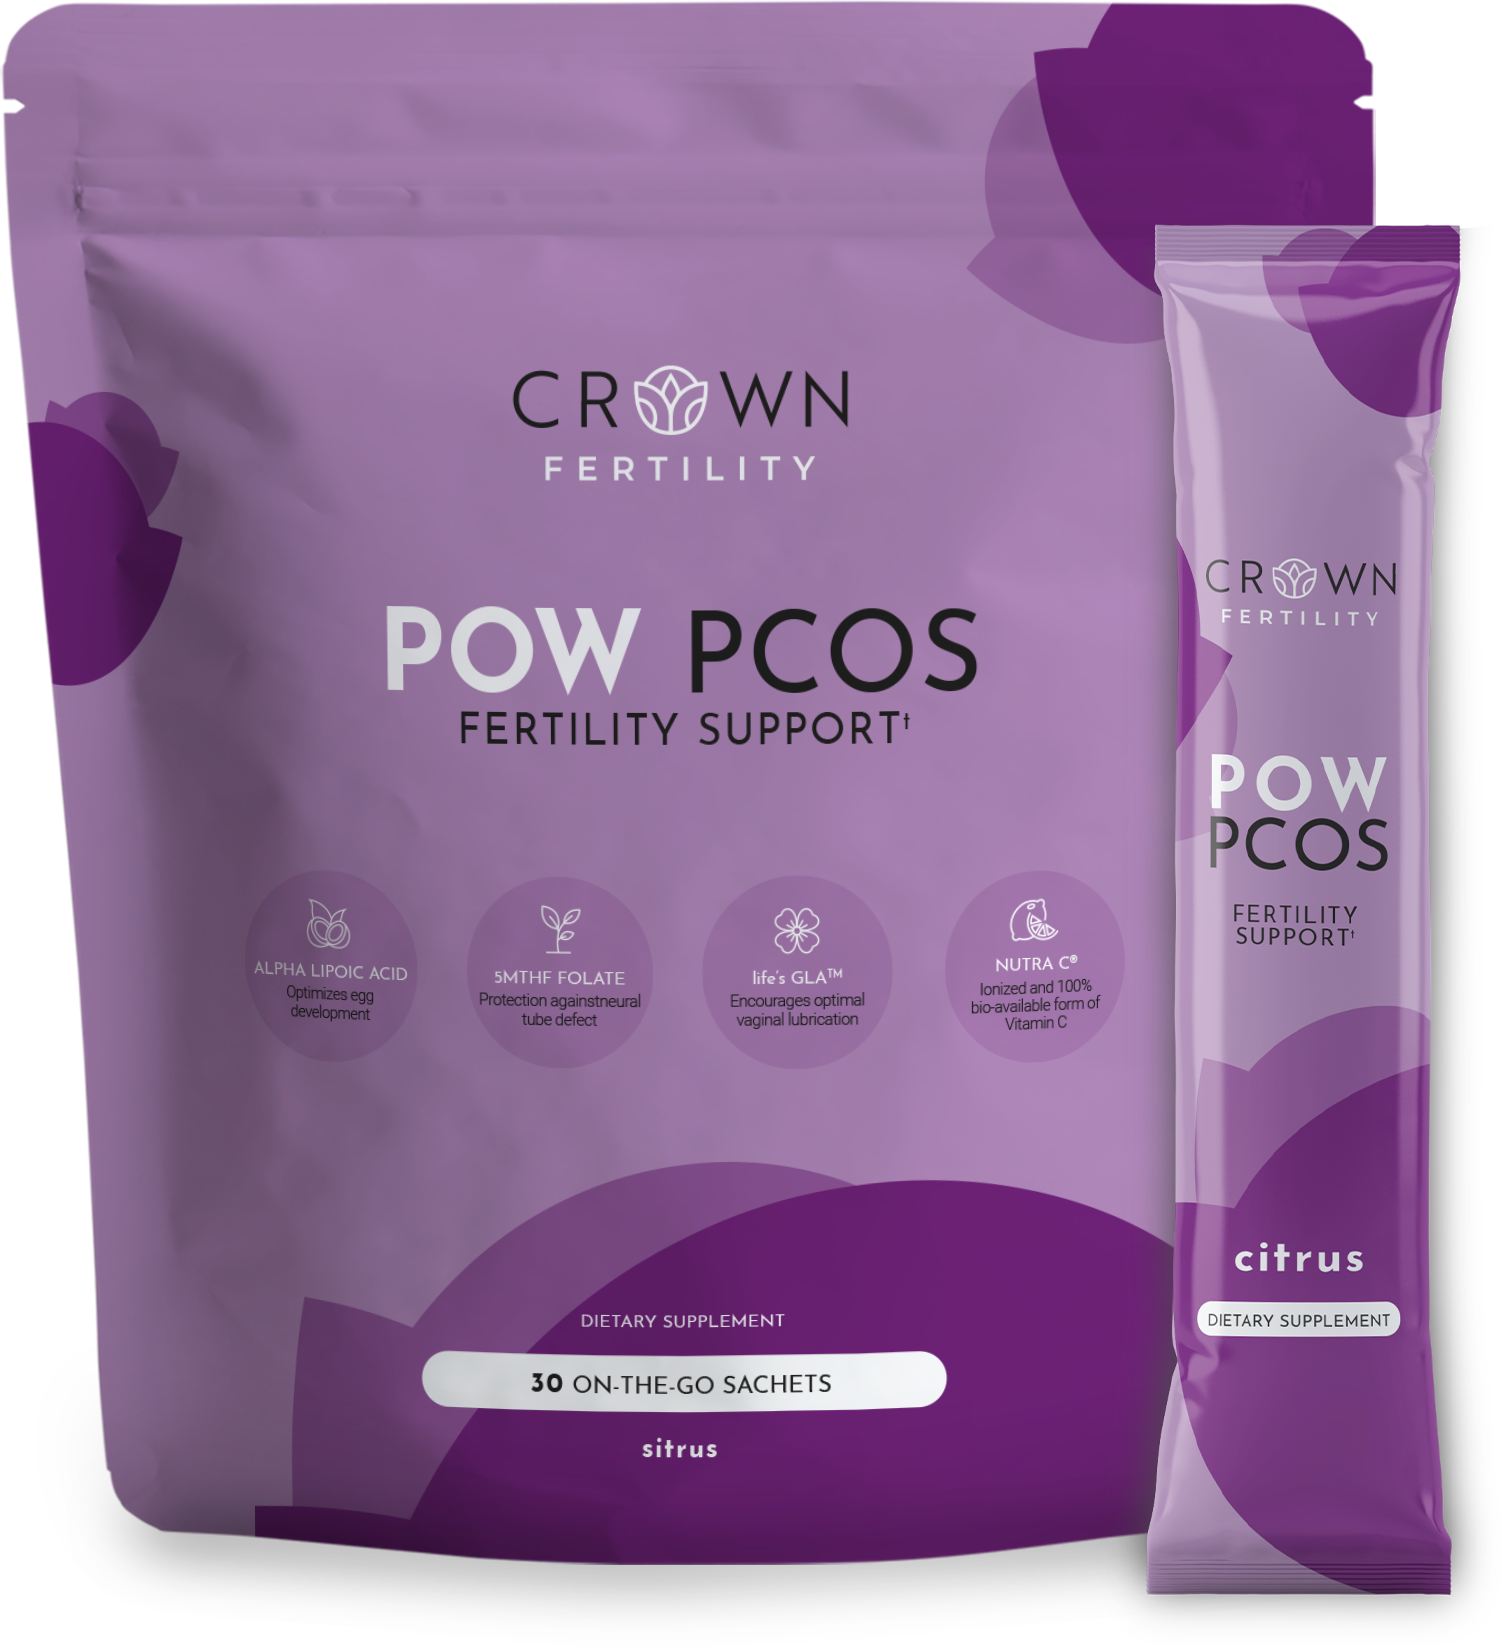 CrownFertility_Packaging_PCOS_all